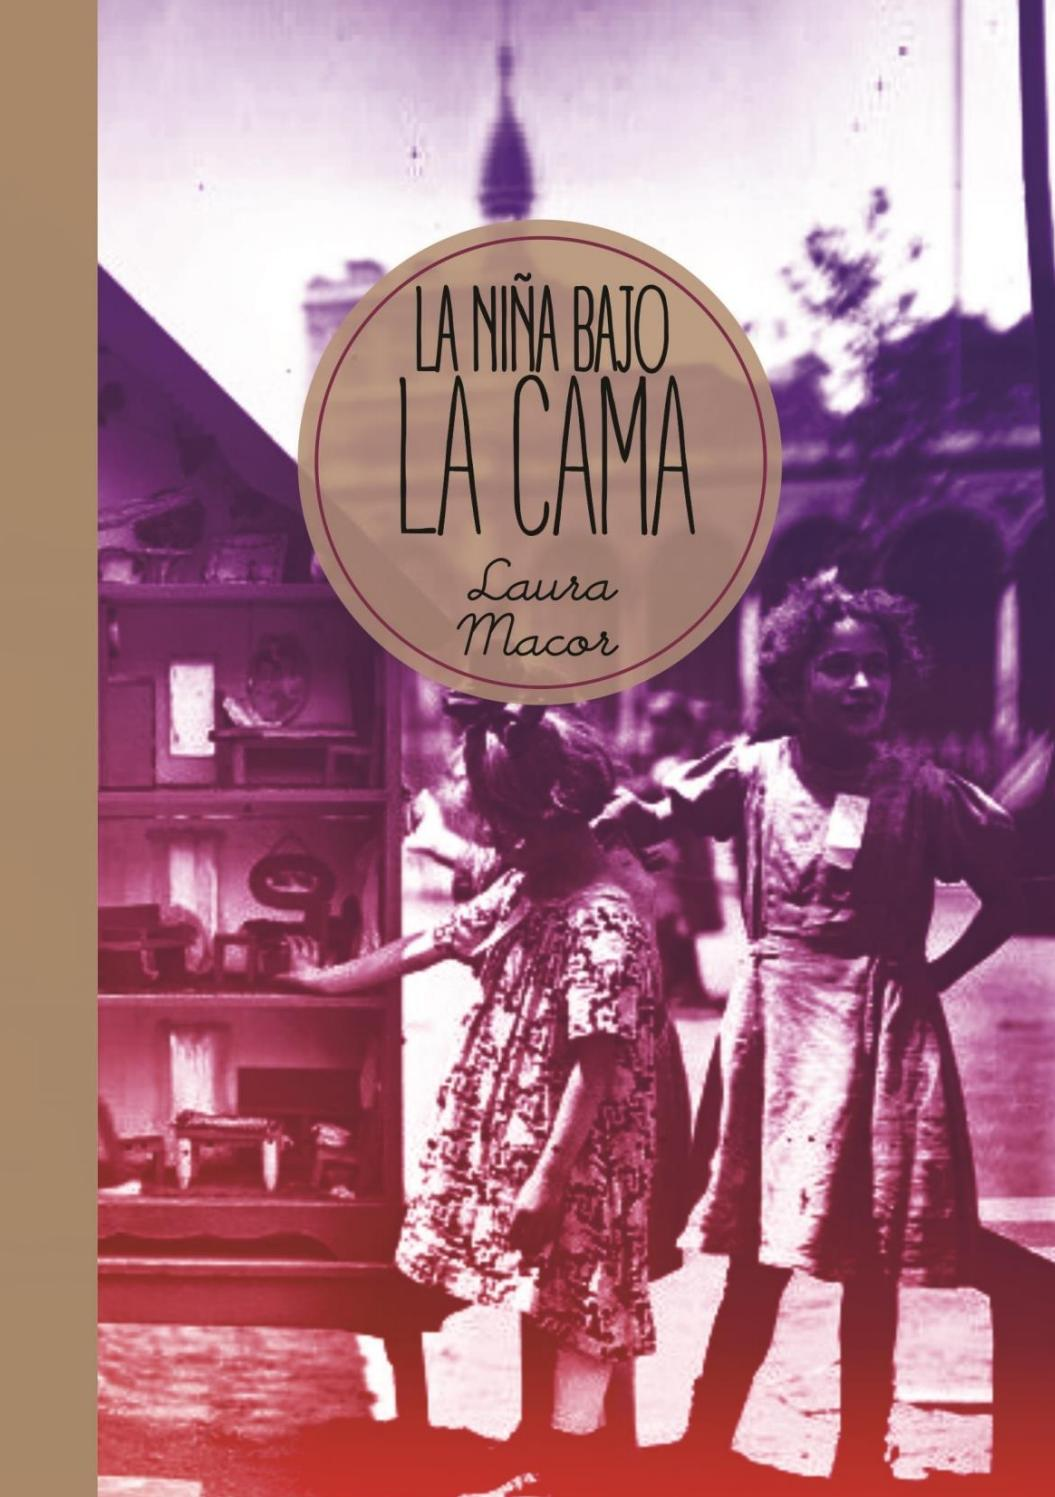 Laura Macor/ La niña bajo la cama by Barnacle - issuu